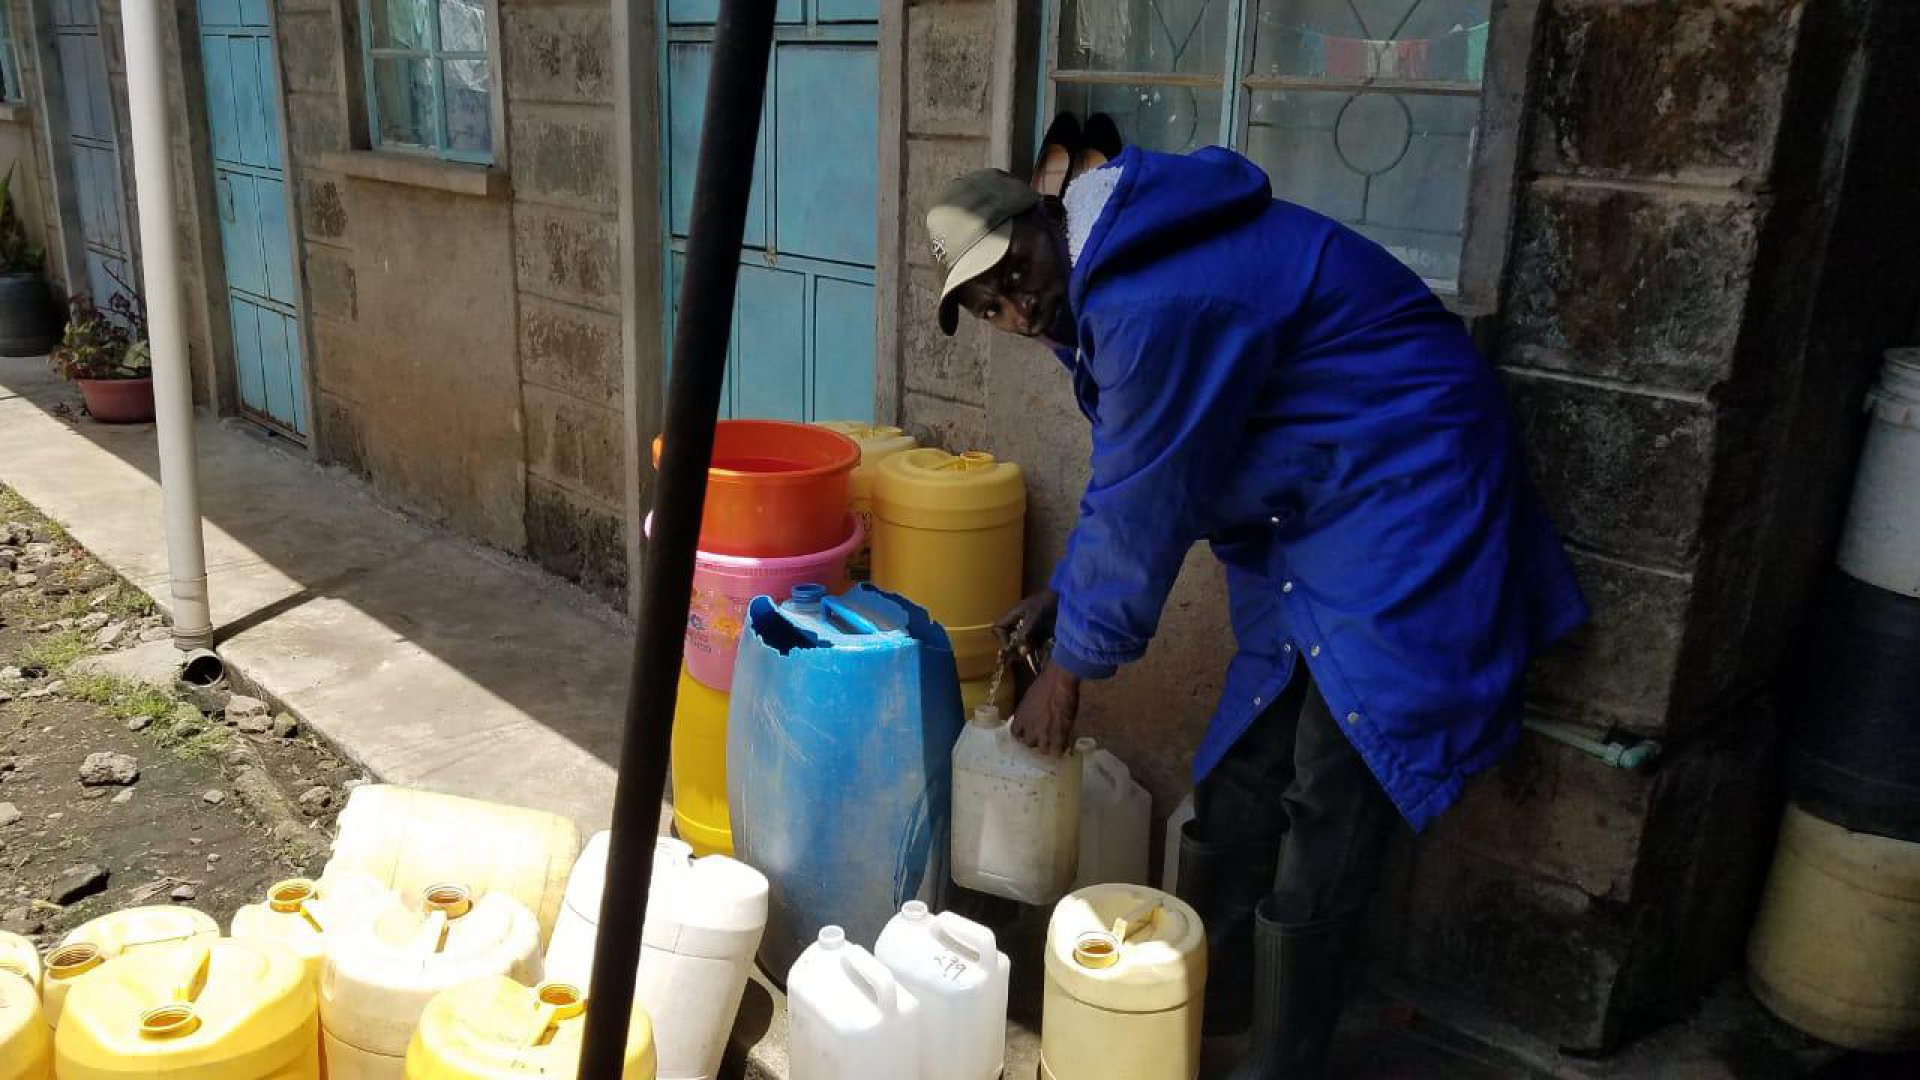 https://www.waterforlife.nl/files/visuals/_1920x1920_fit_center-center_85_none/Rongai-6-Mile-2.JPG